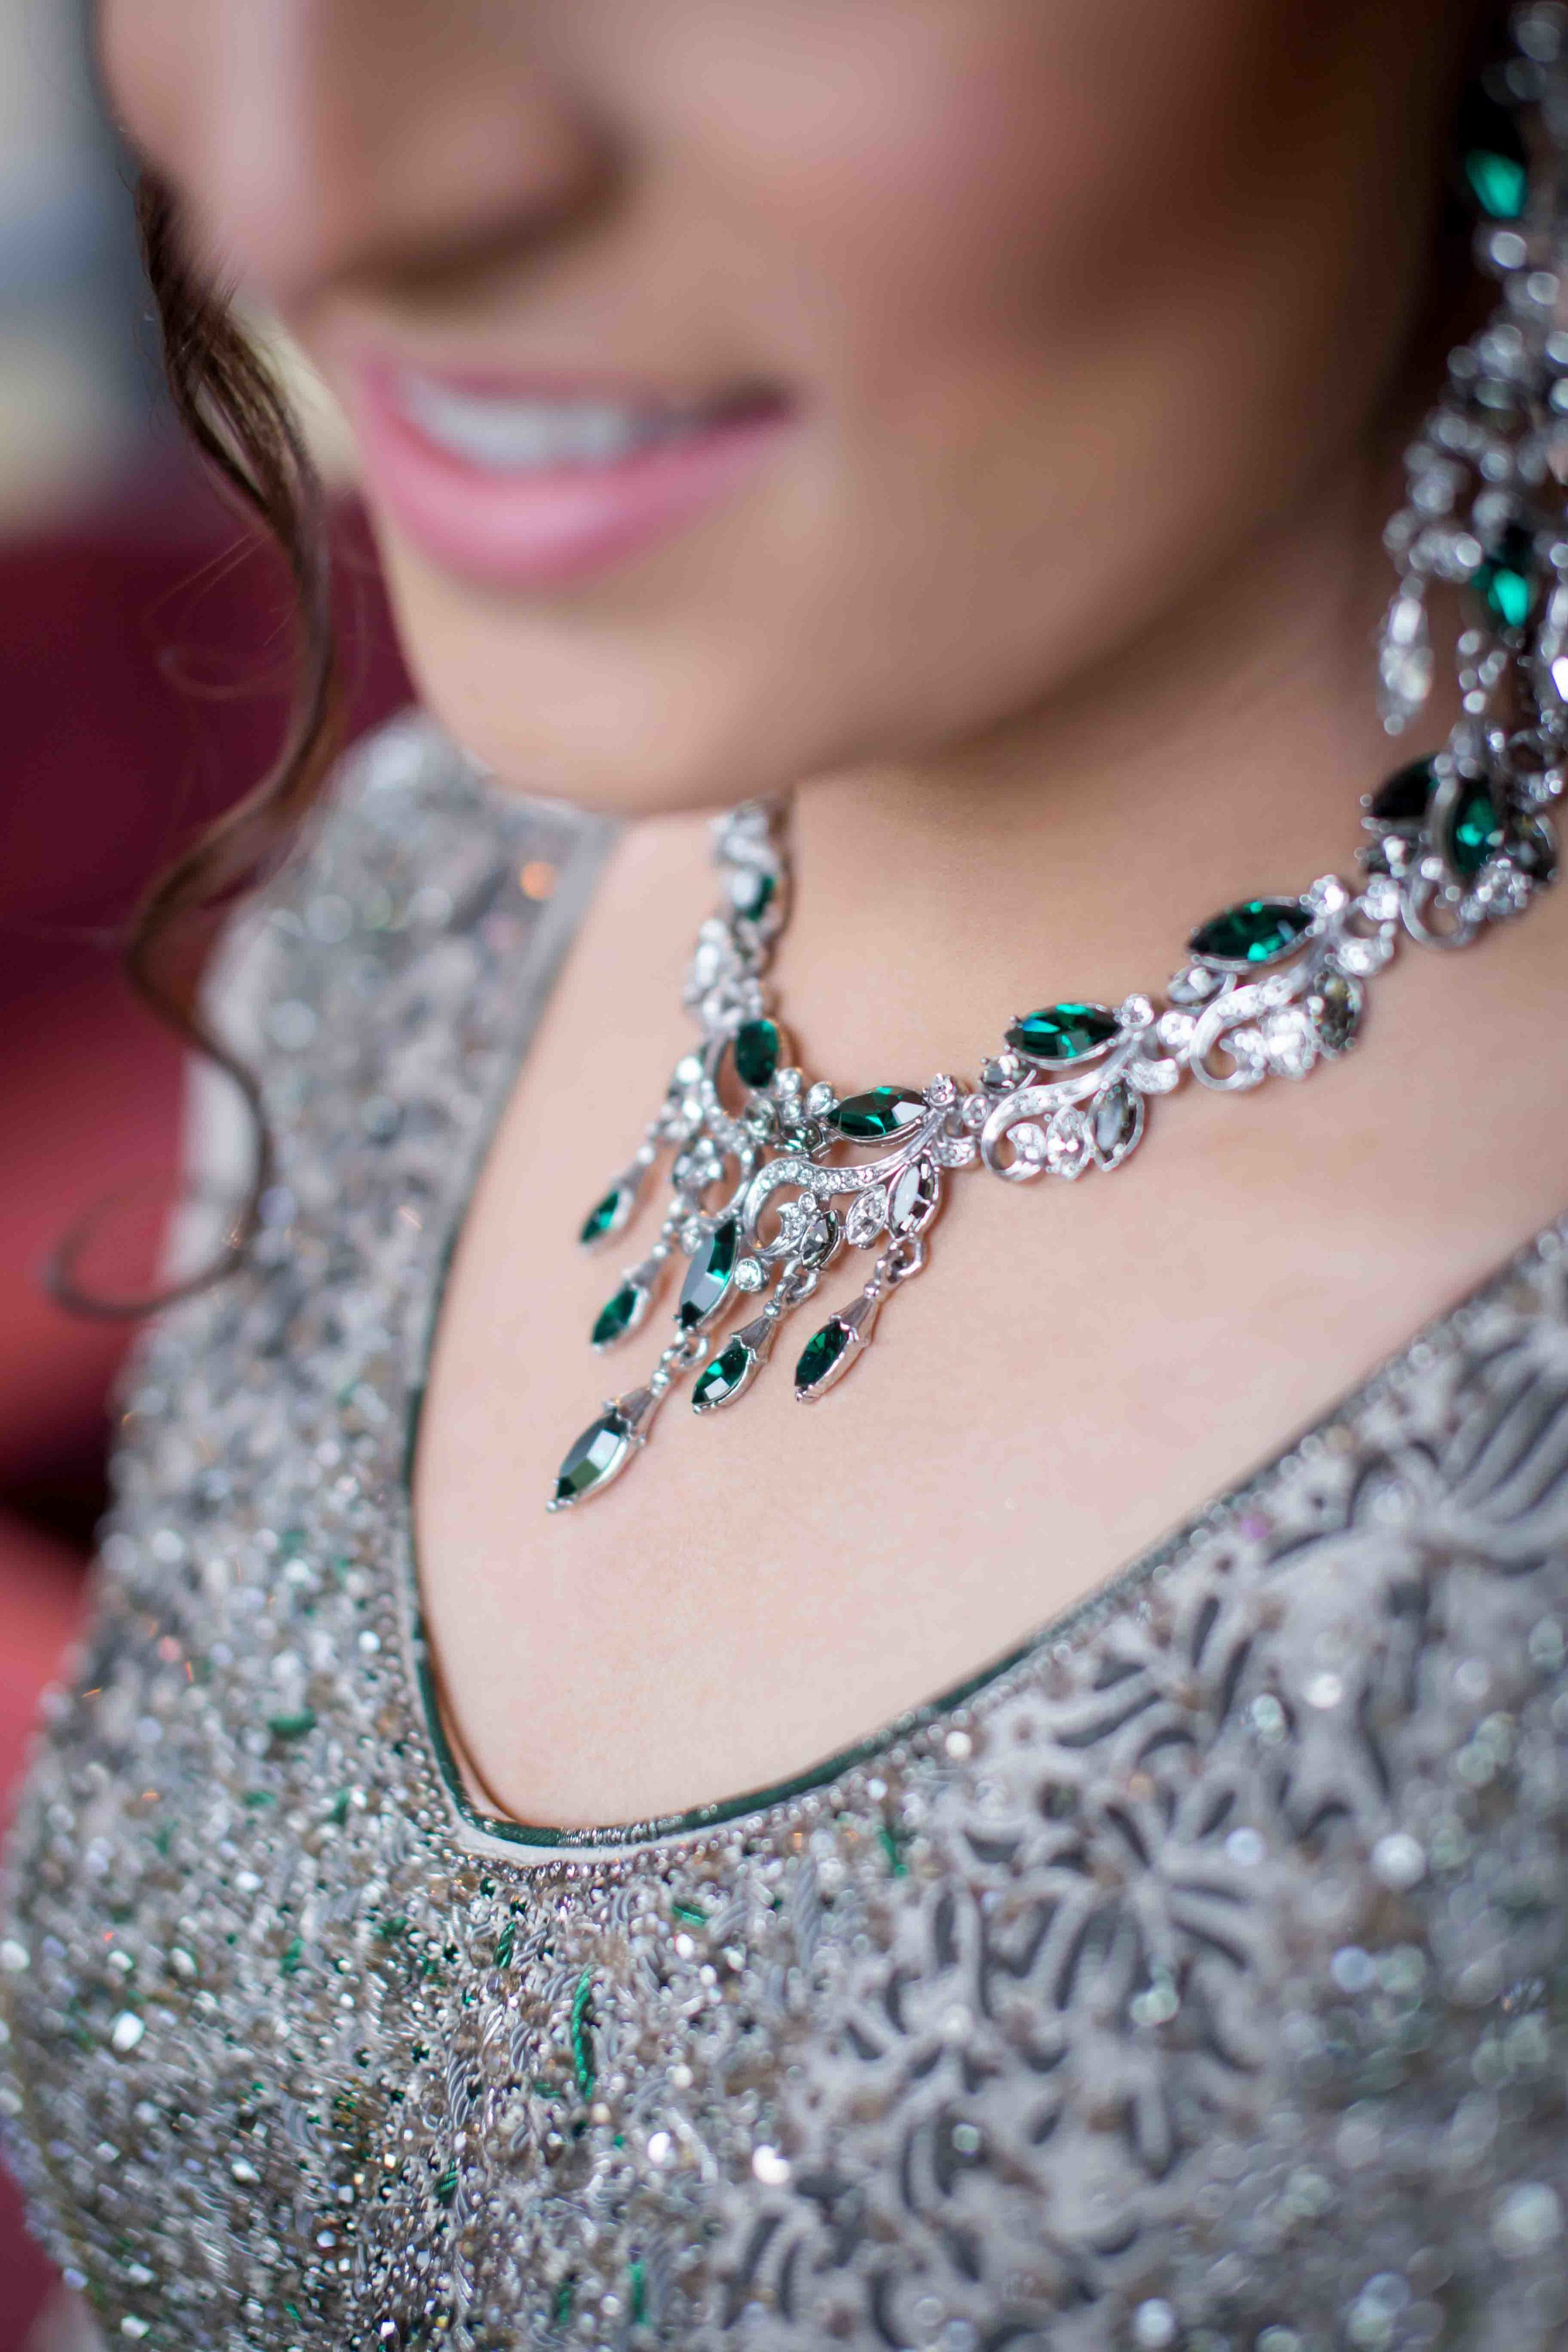 Opu Sultan Photography Asian wedding photography scotland edinburgh glasgow manchester birmingham london-16.jpg